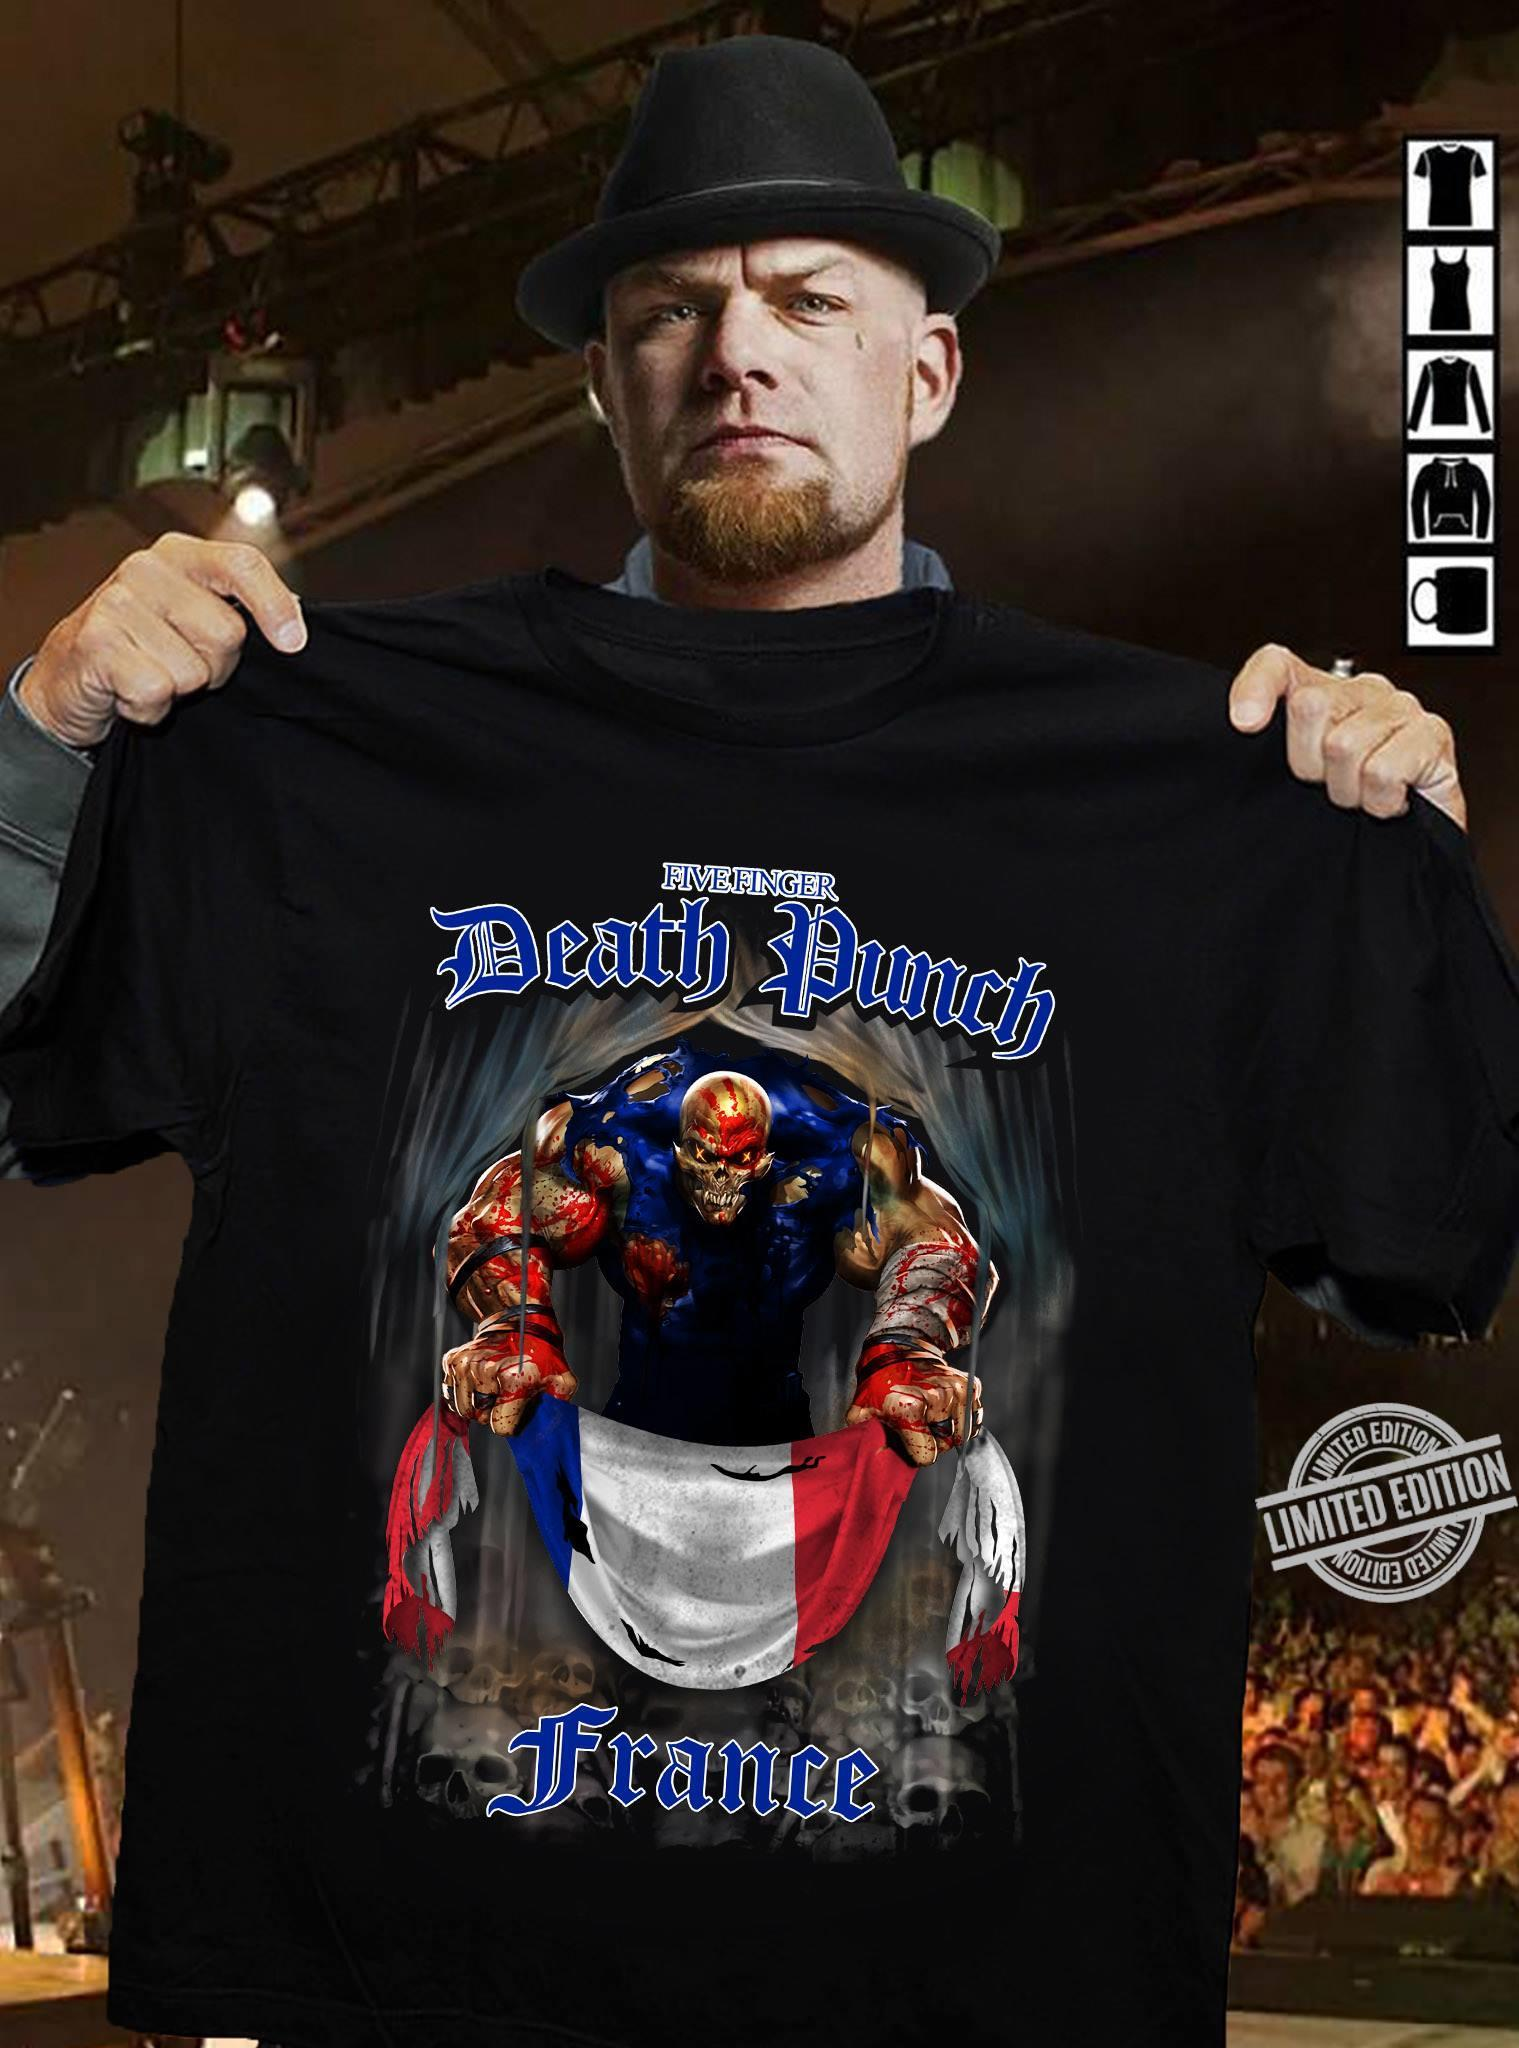 Fice Anger Death Punch France Shirt